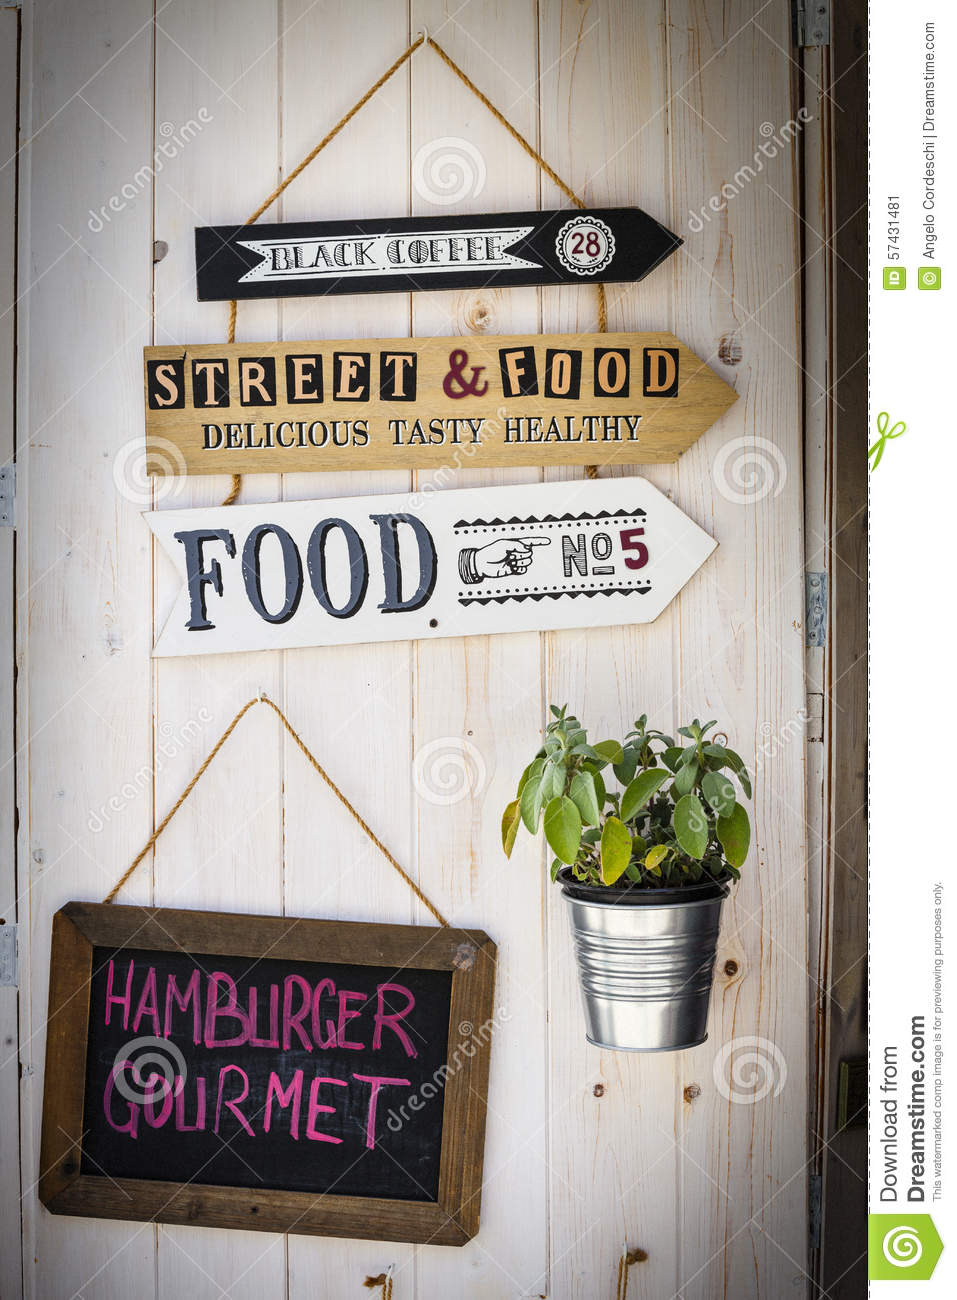 Signs restaurant retro arrows decoration wooden background stock illustration image 57431481 - Restaurant decoratie ...